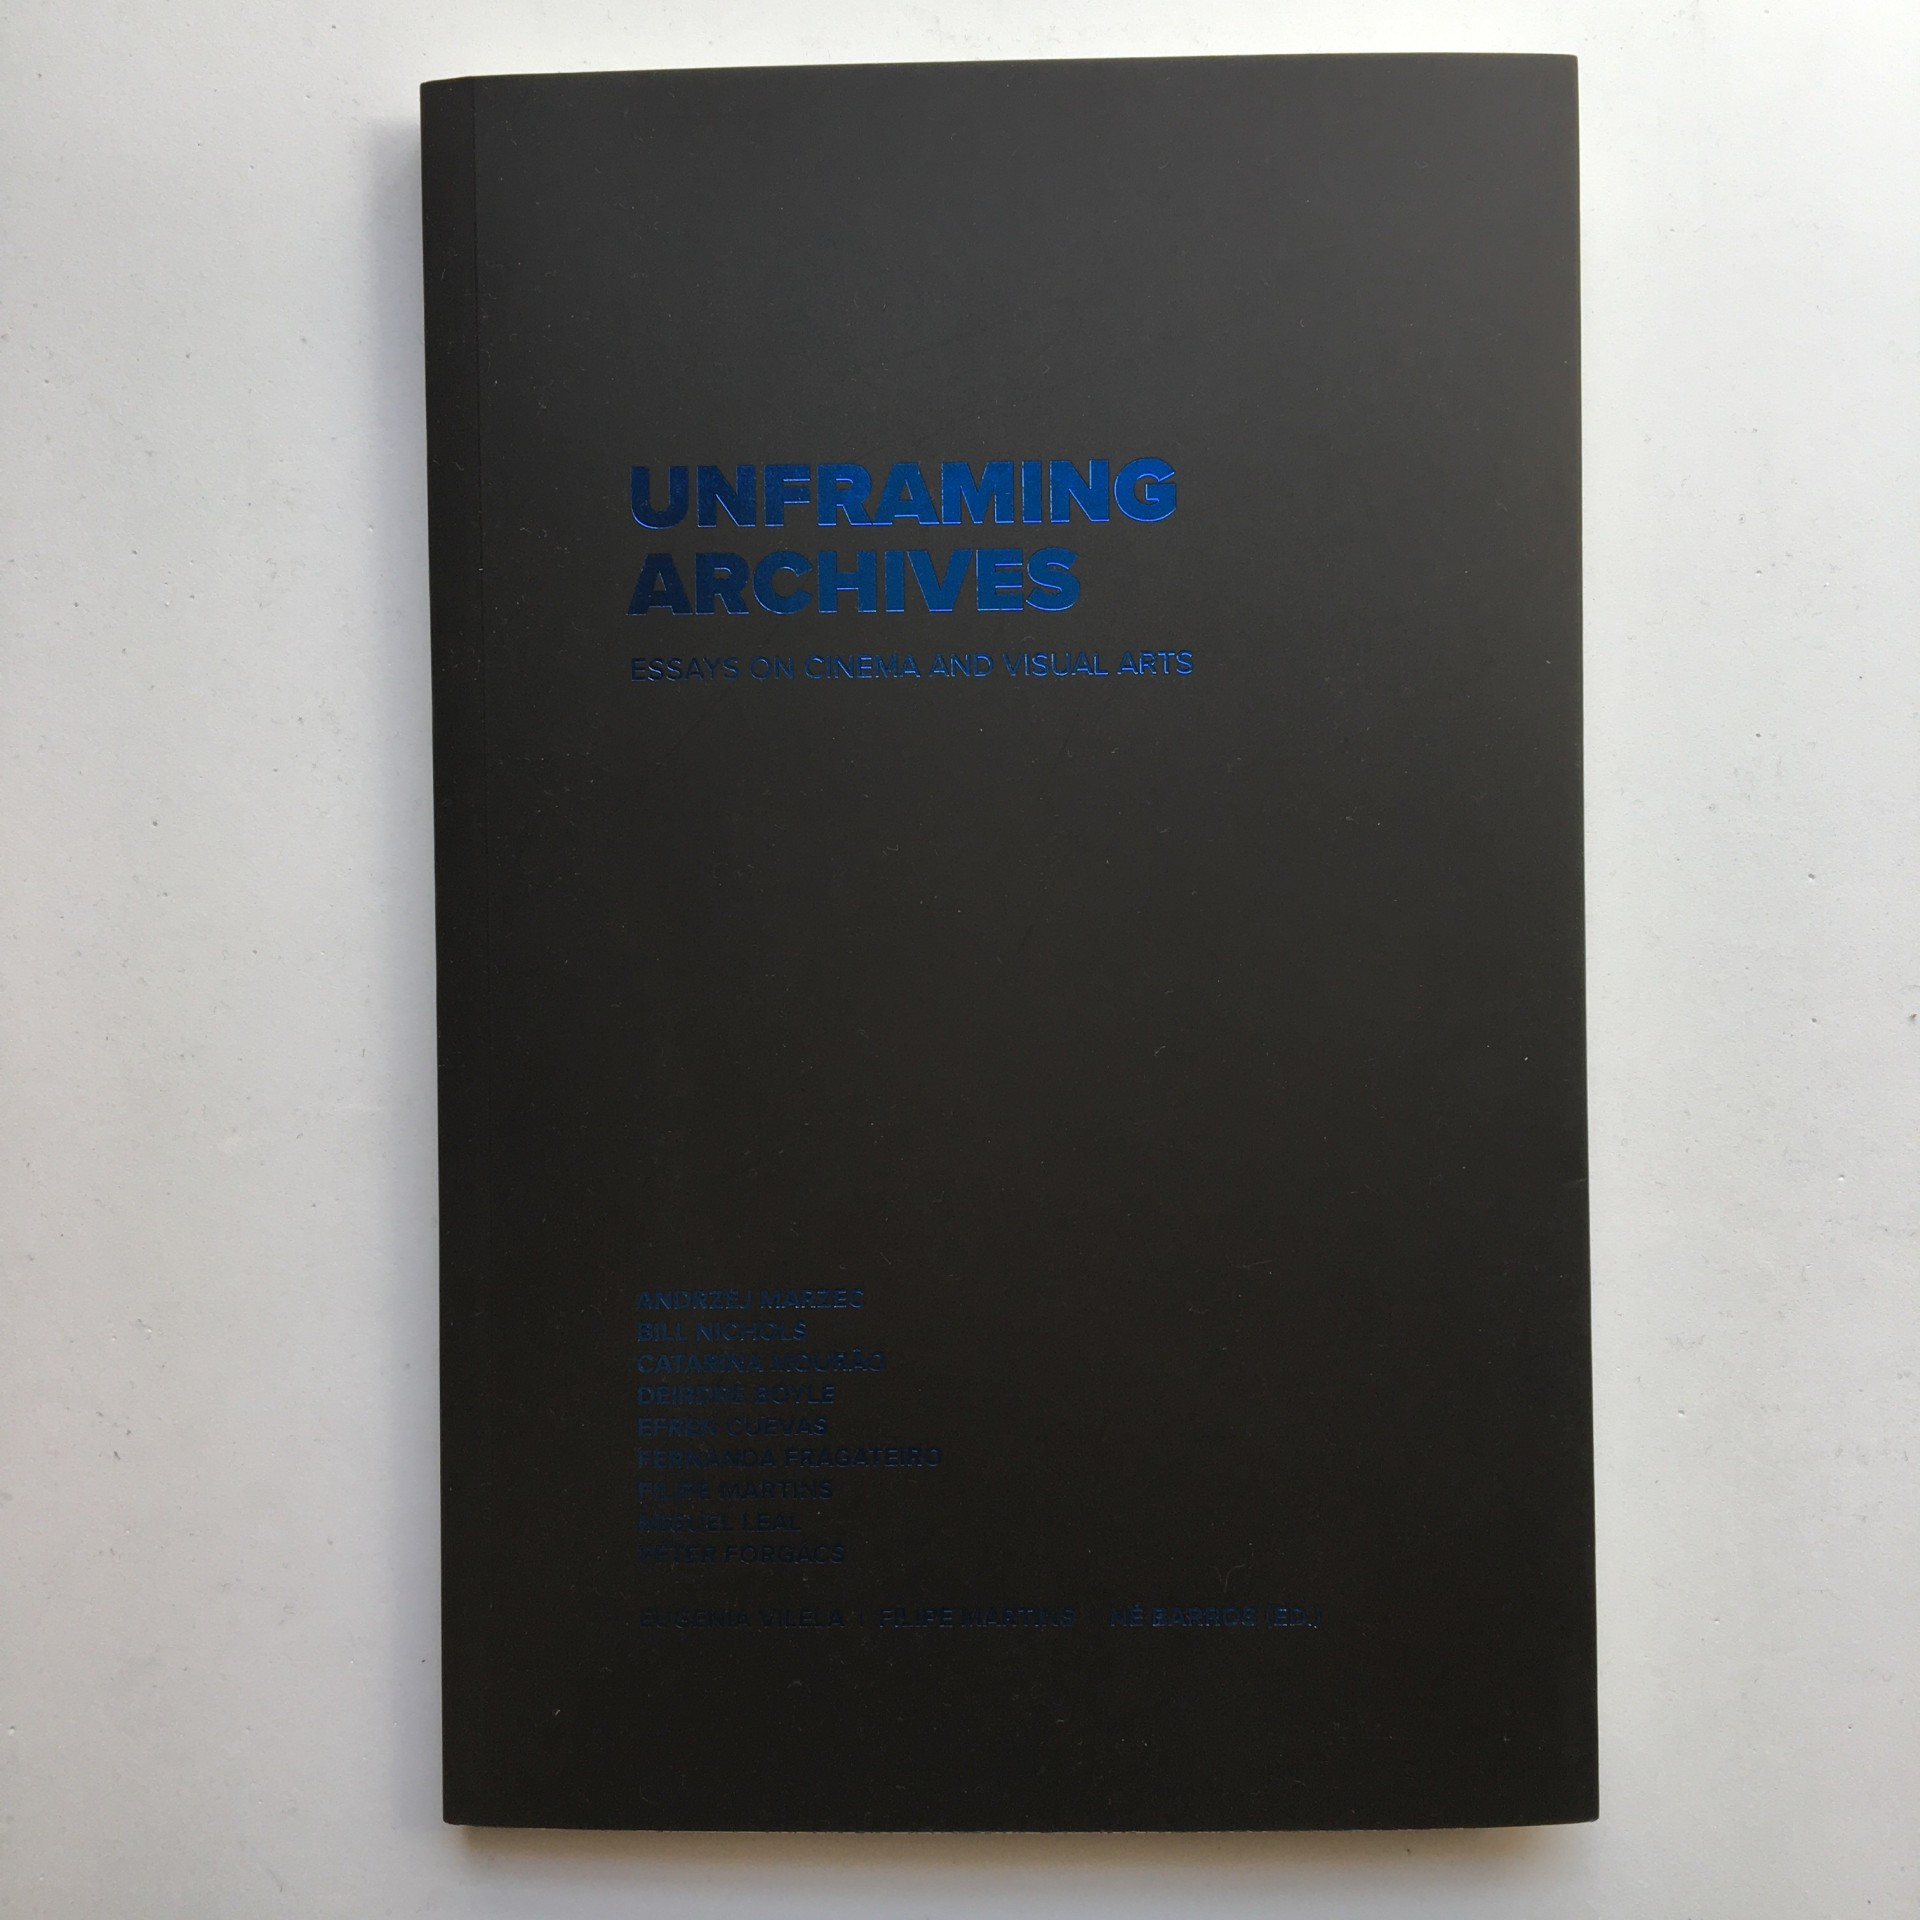 Unframing Archives: essays on cinema and visual arts